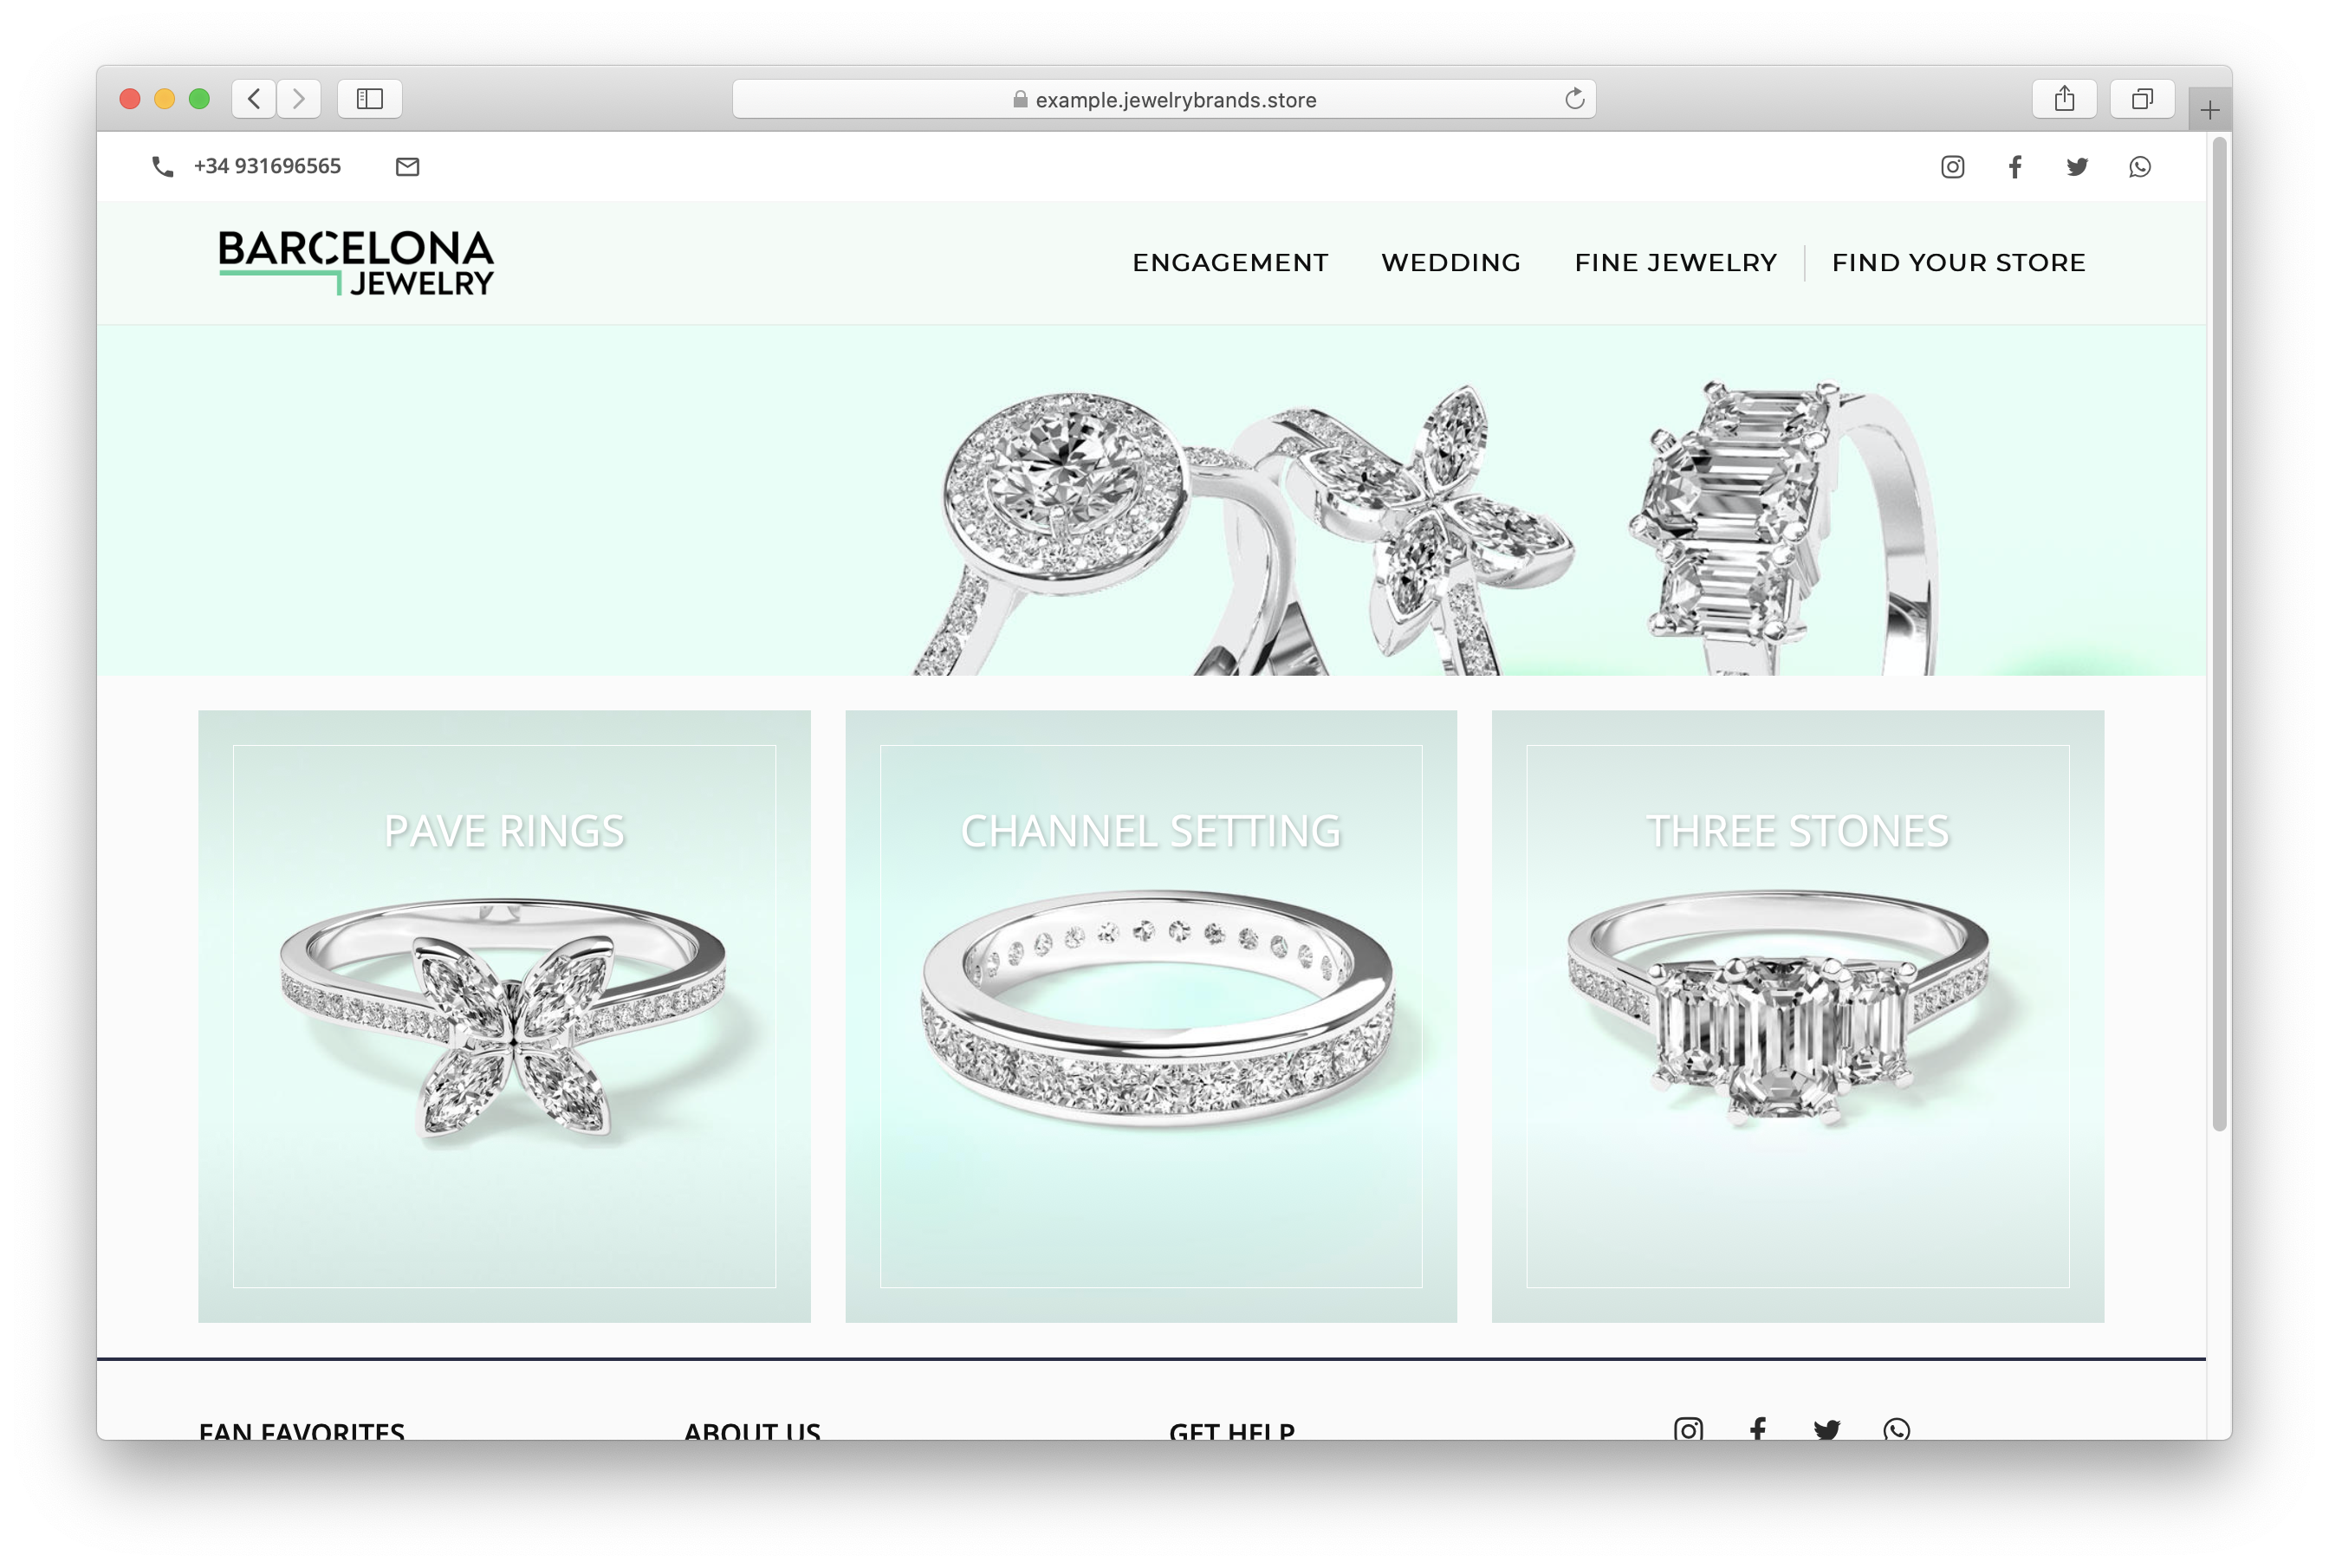 You've never built a jewelry eCommerce like this before